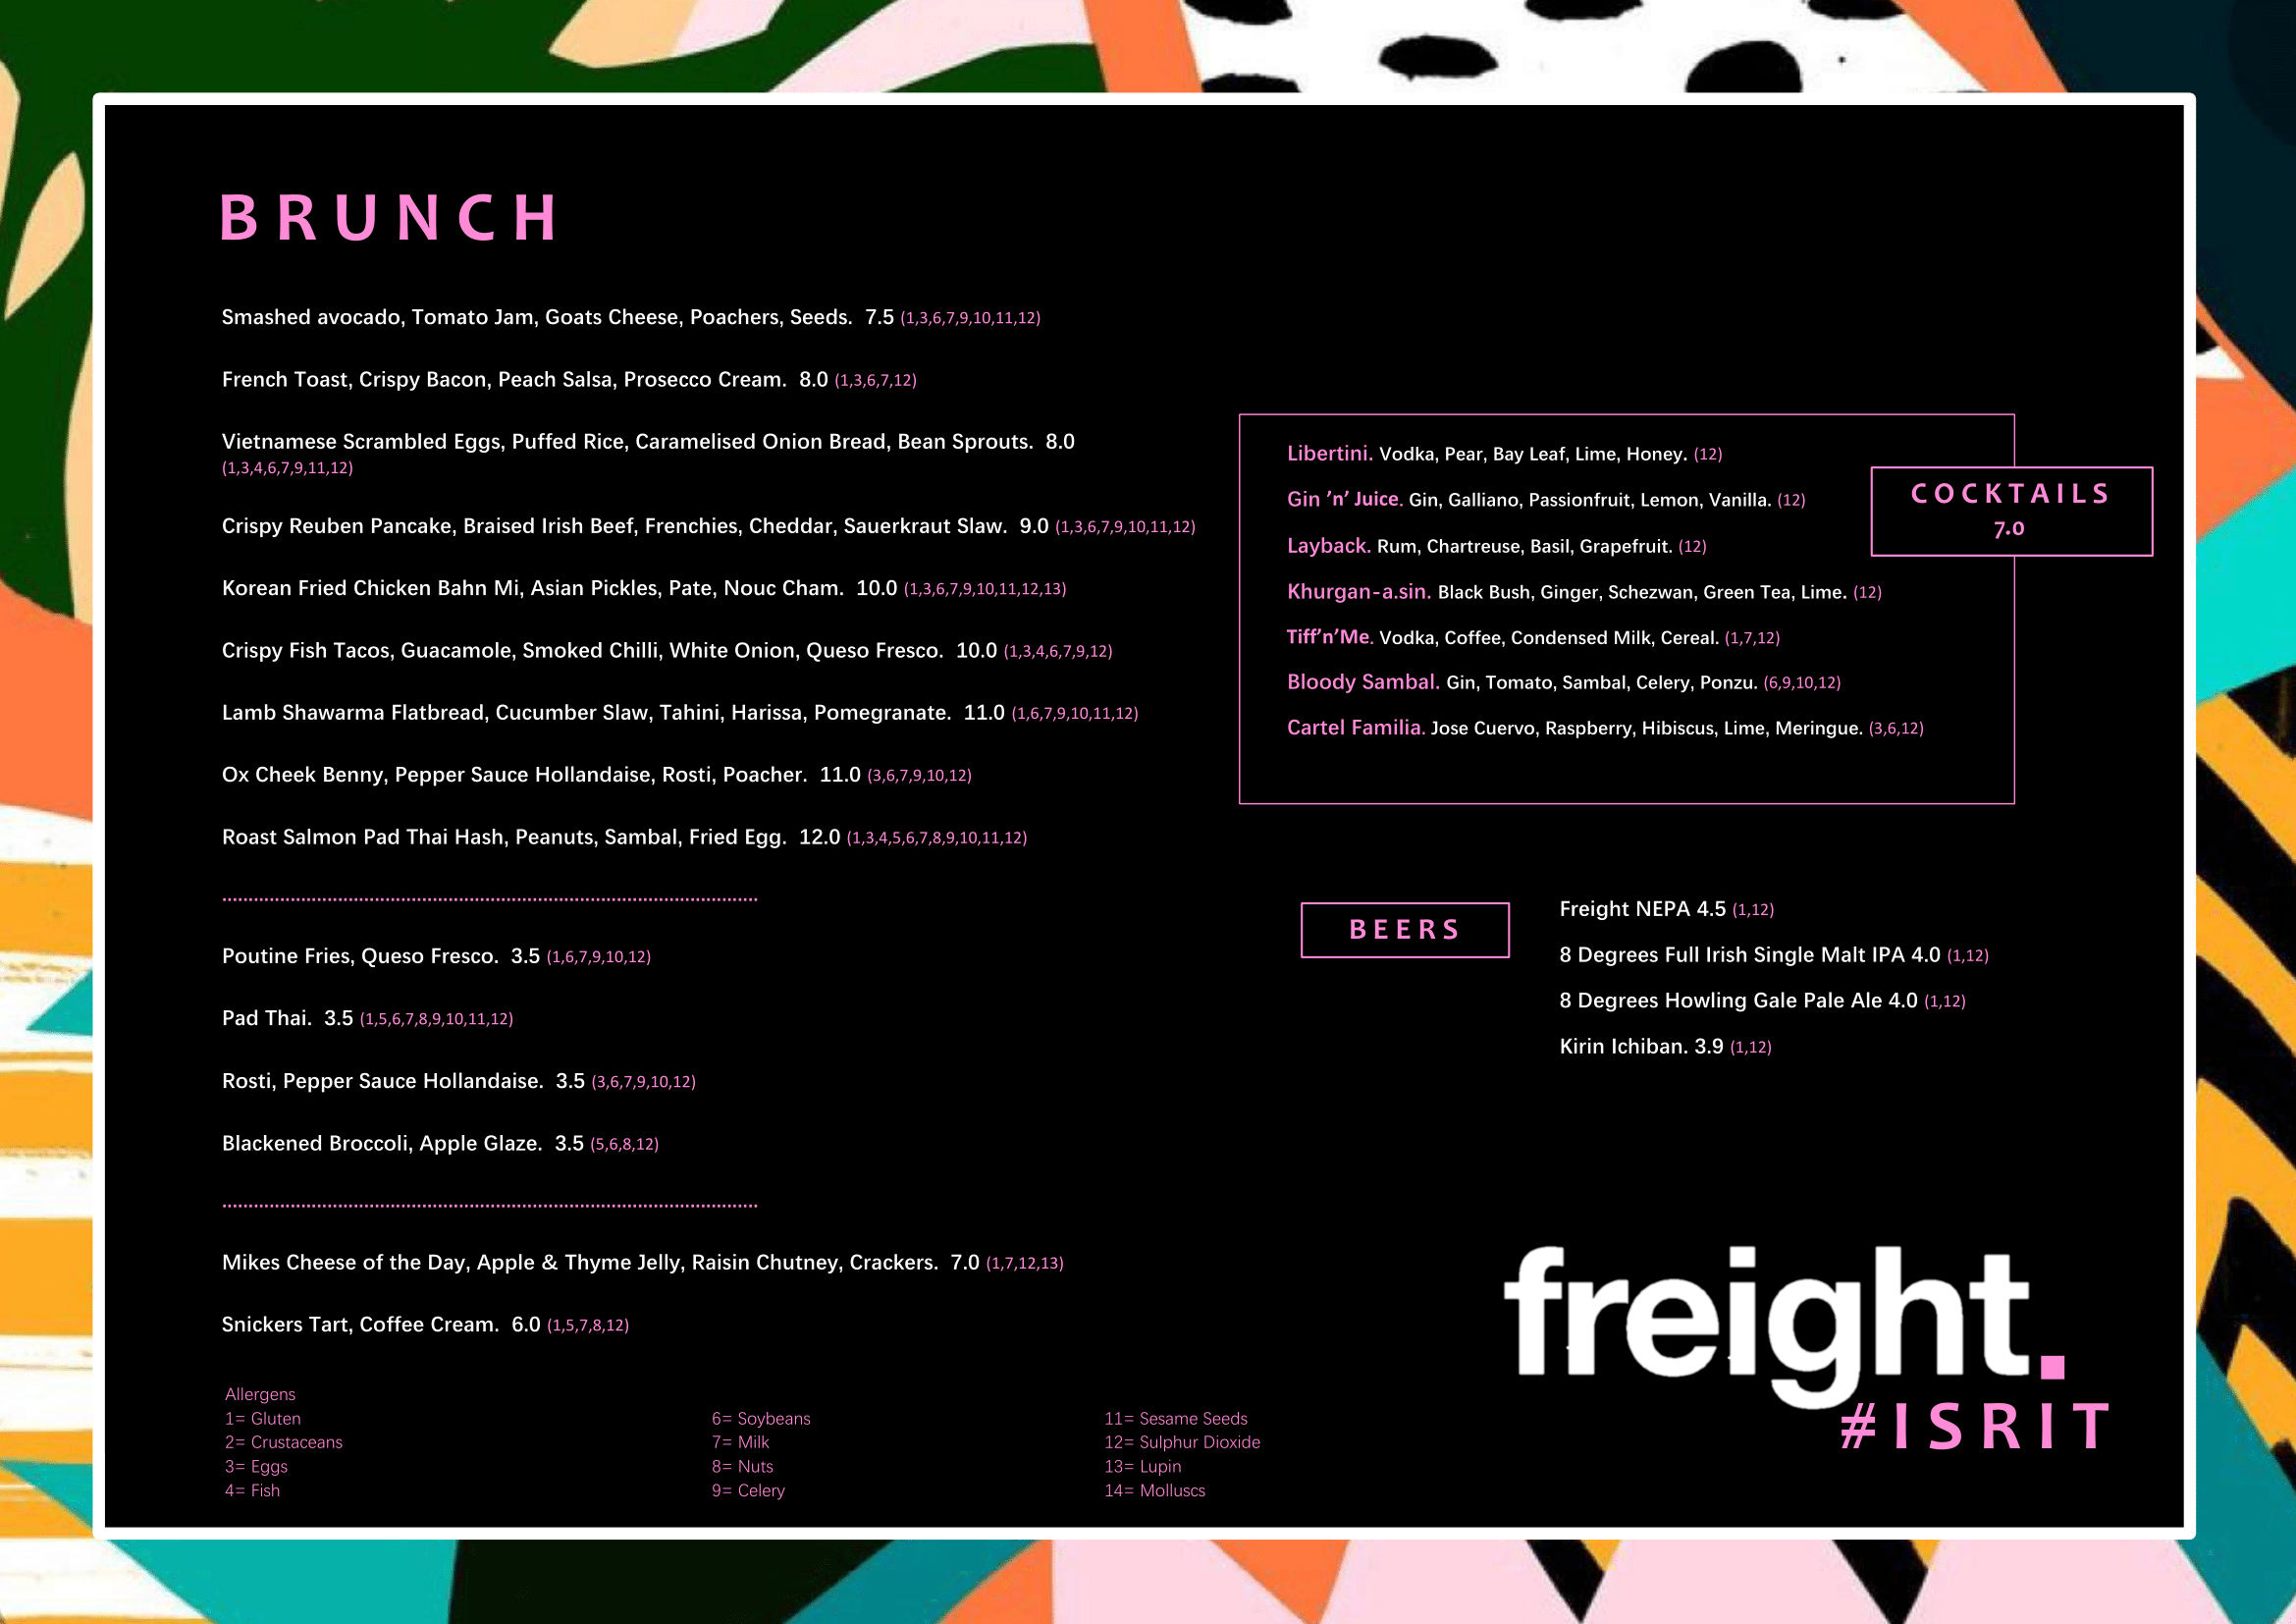 freight-brunch-menu